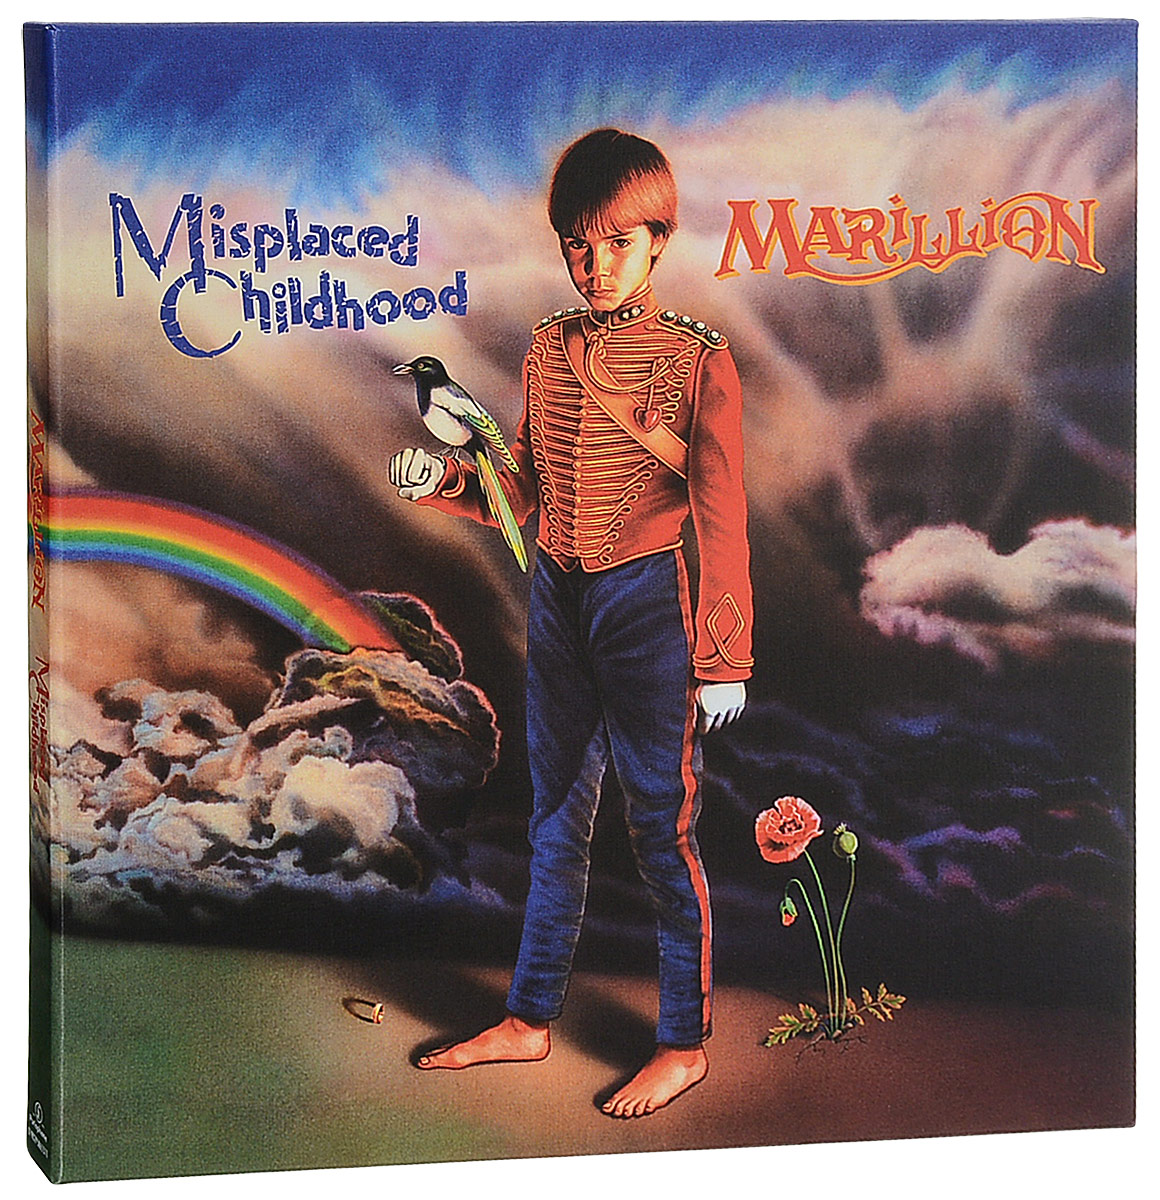 Marillion Marillion. Misplaced Childhood (Deluxe Edition) (4 LP) marillion marillion marillion best live 4 lp